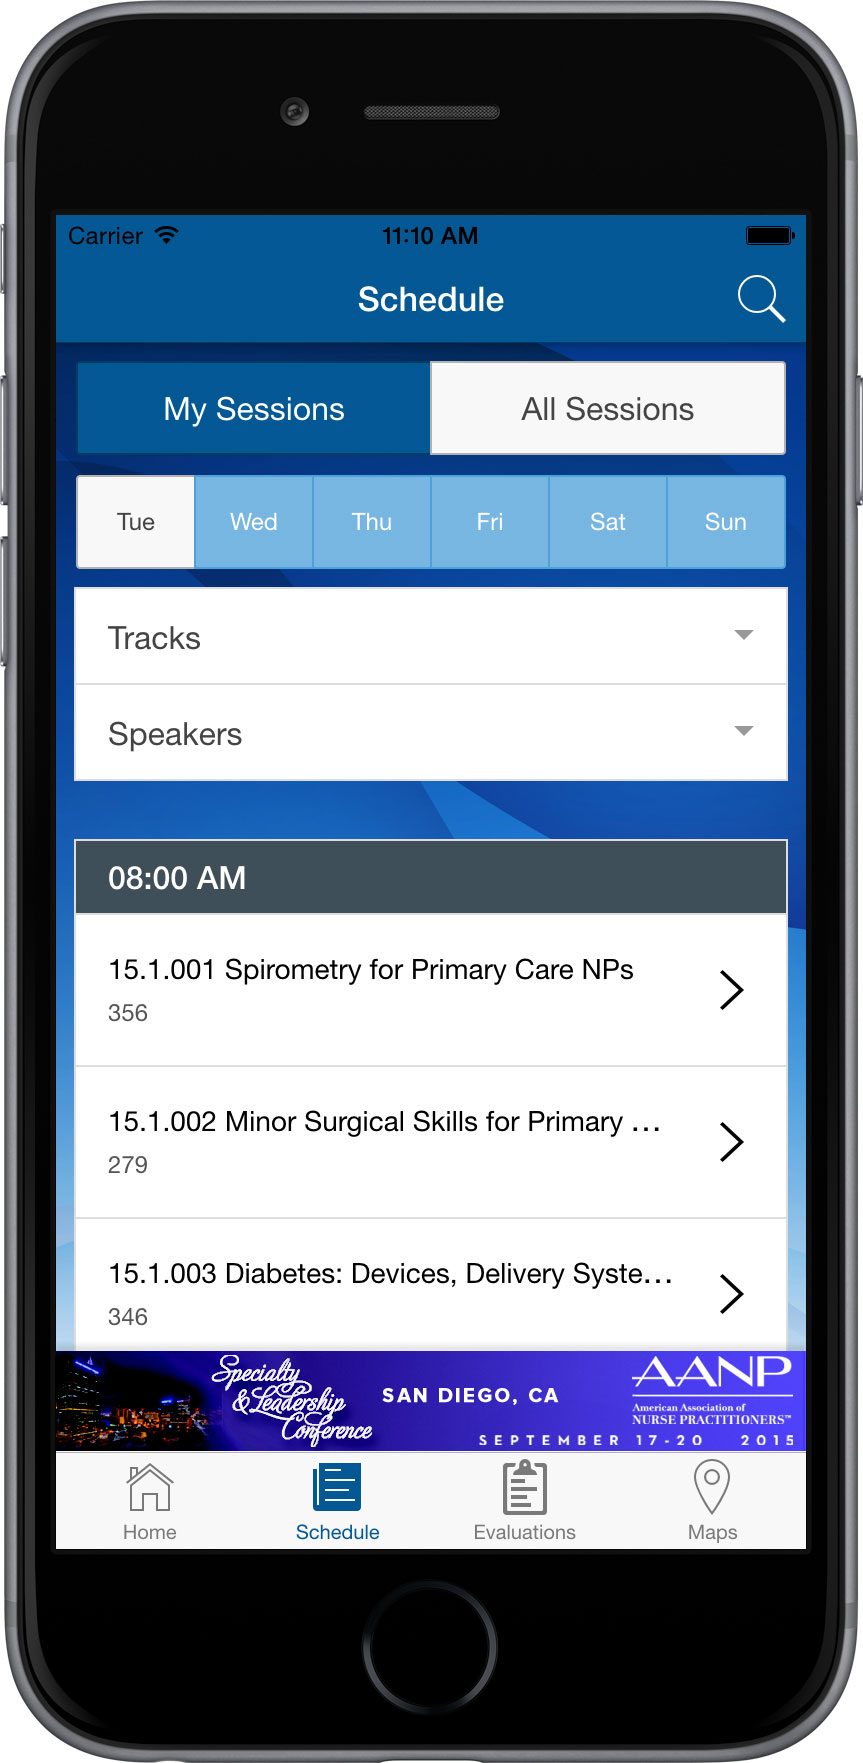 AANP Conference Mobile App - Schedule Screen